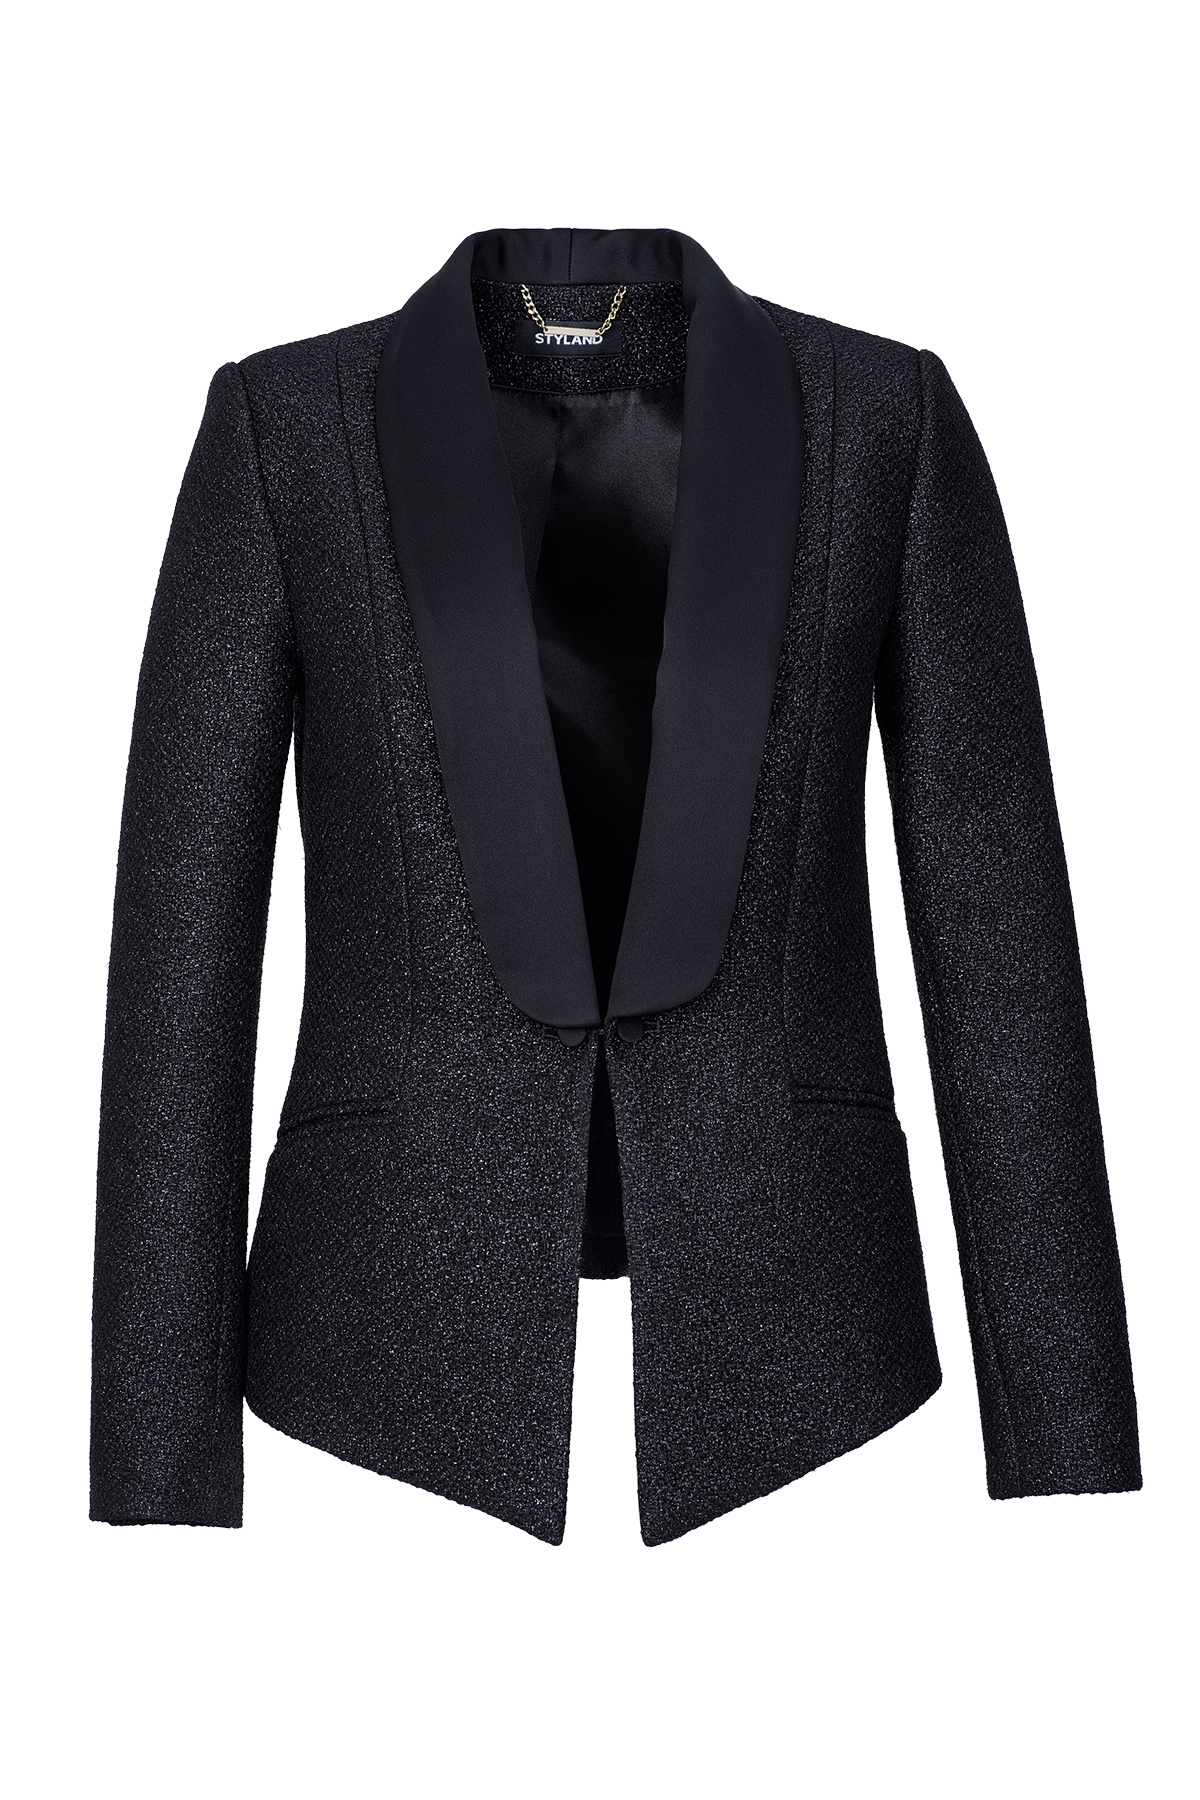 METALLIC BLACK TUXEDO WITH SHAWL LAPEL